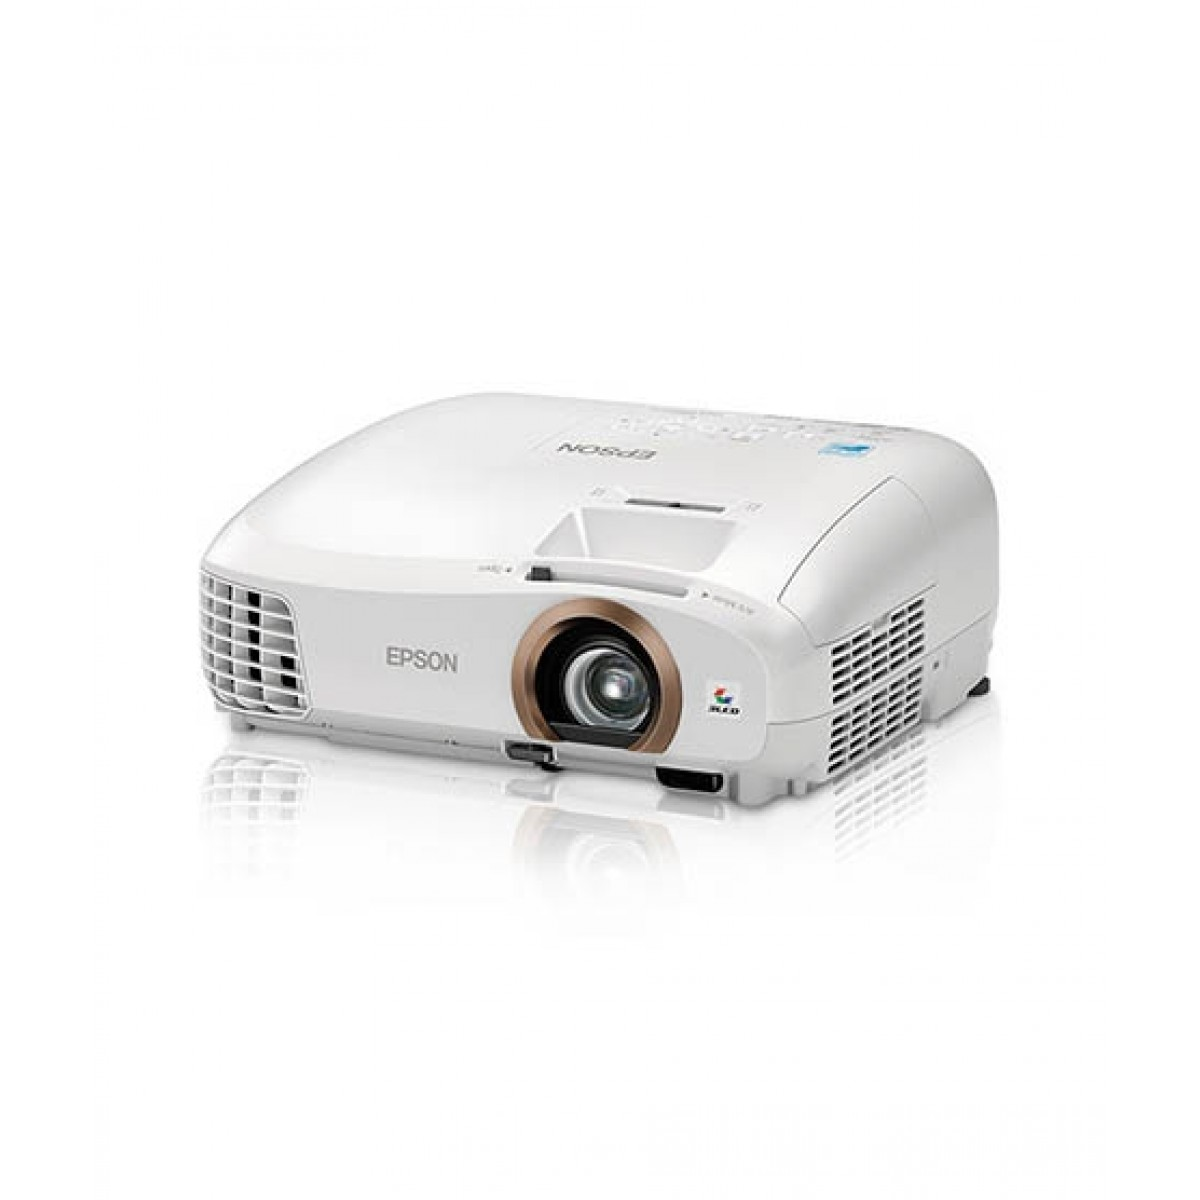 Epson PowerLite Home Cinema 2045 Full 3LCD Home Theater Projector